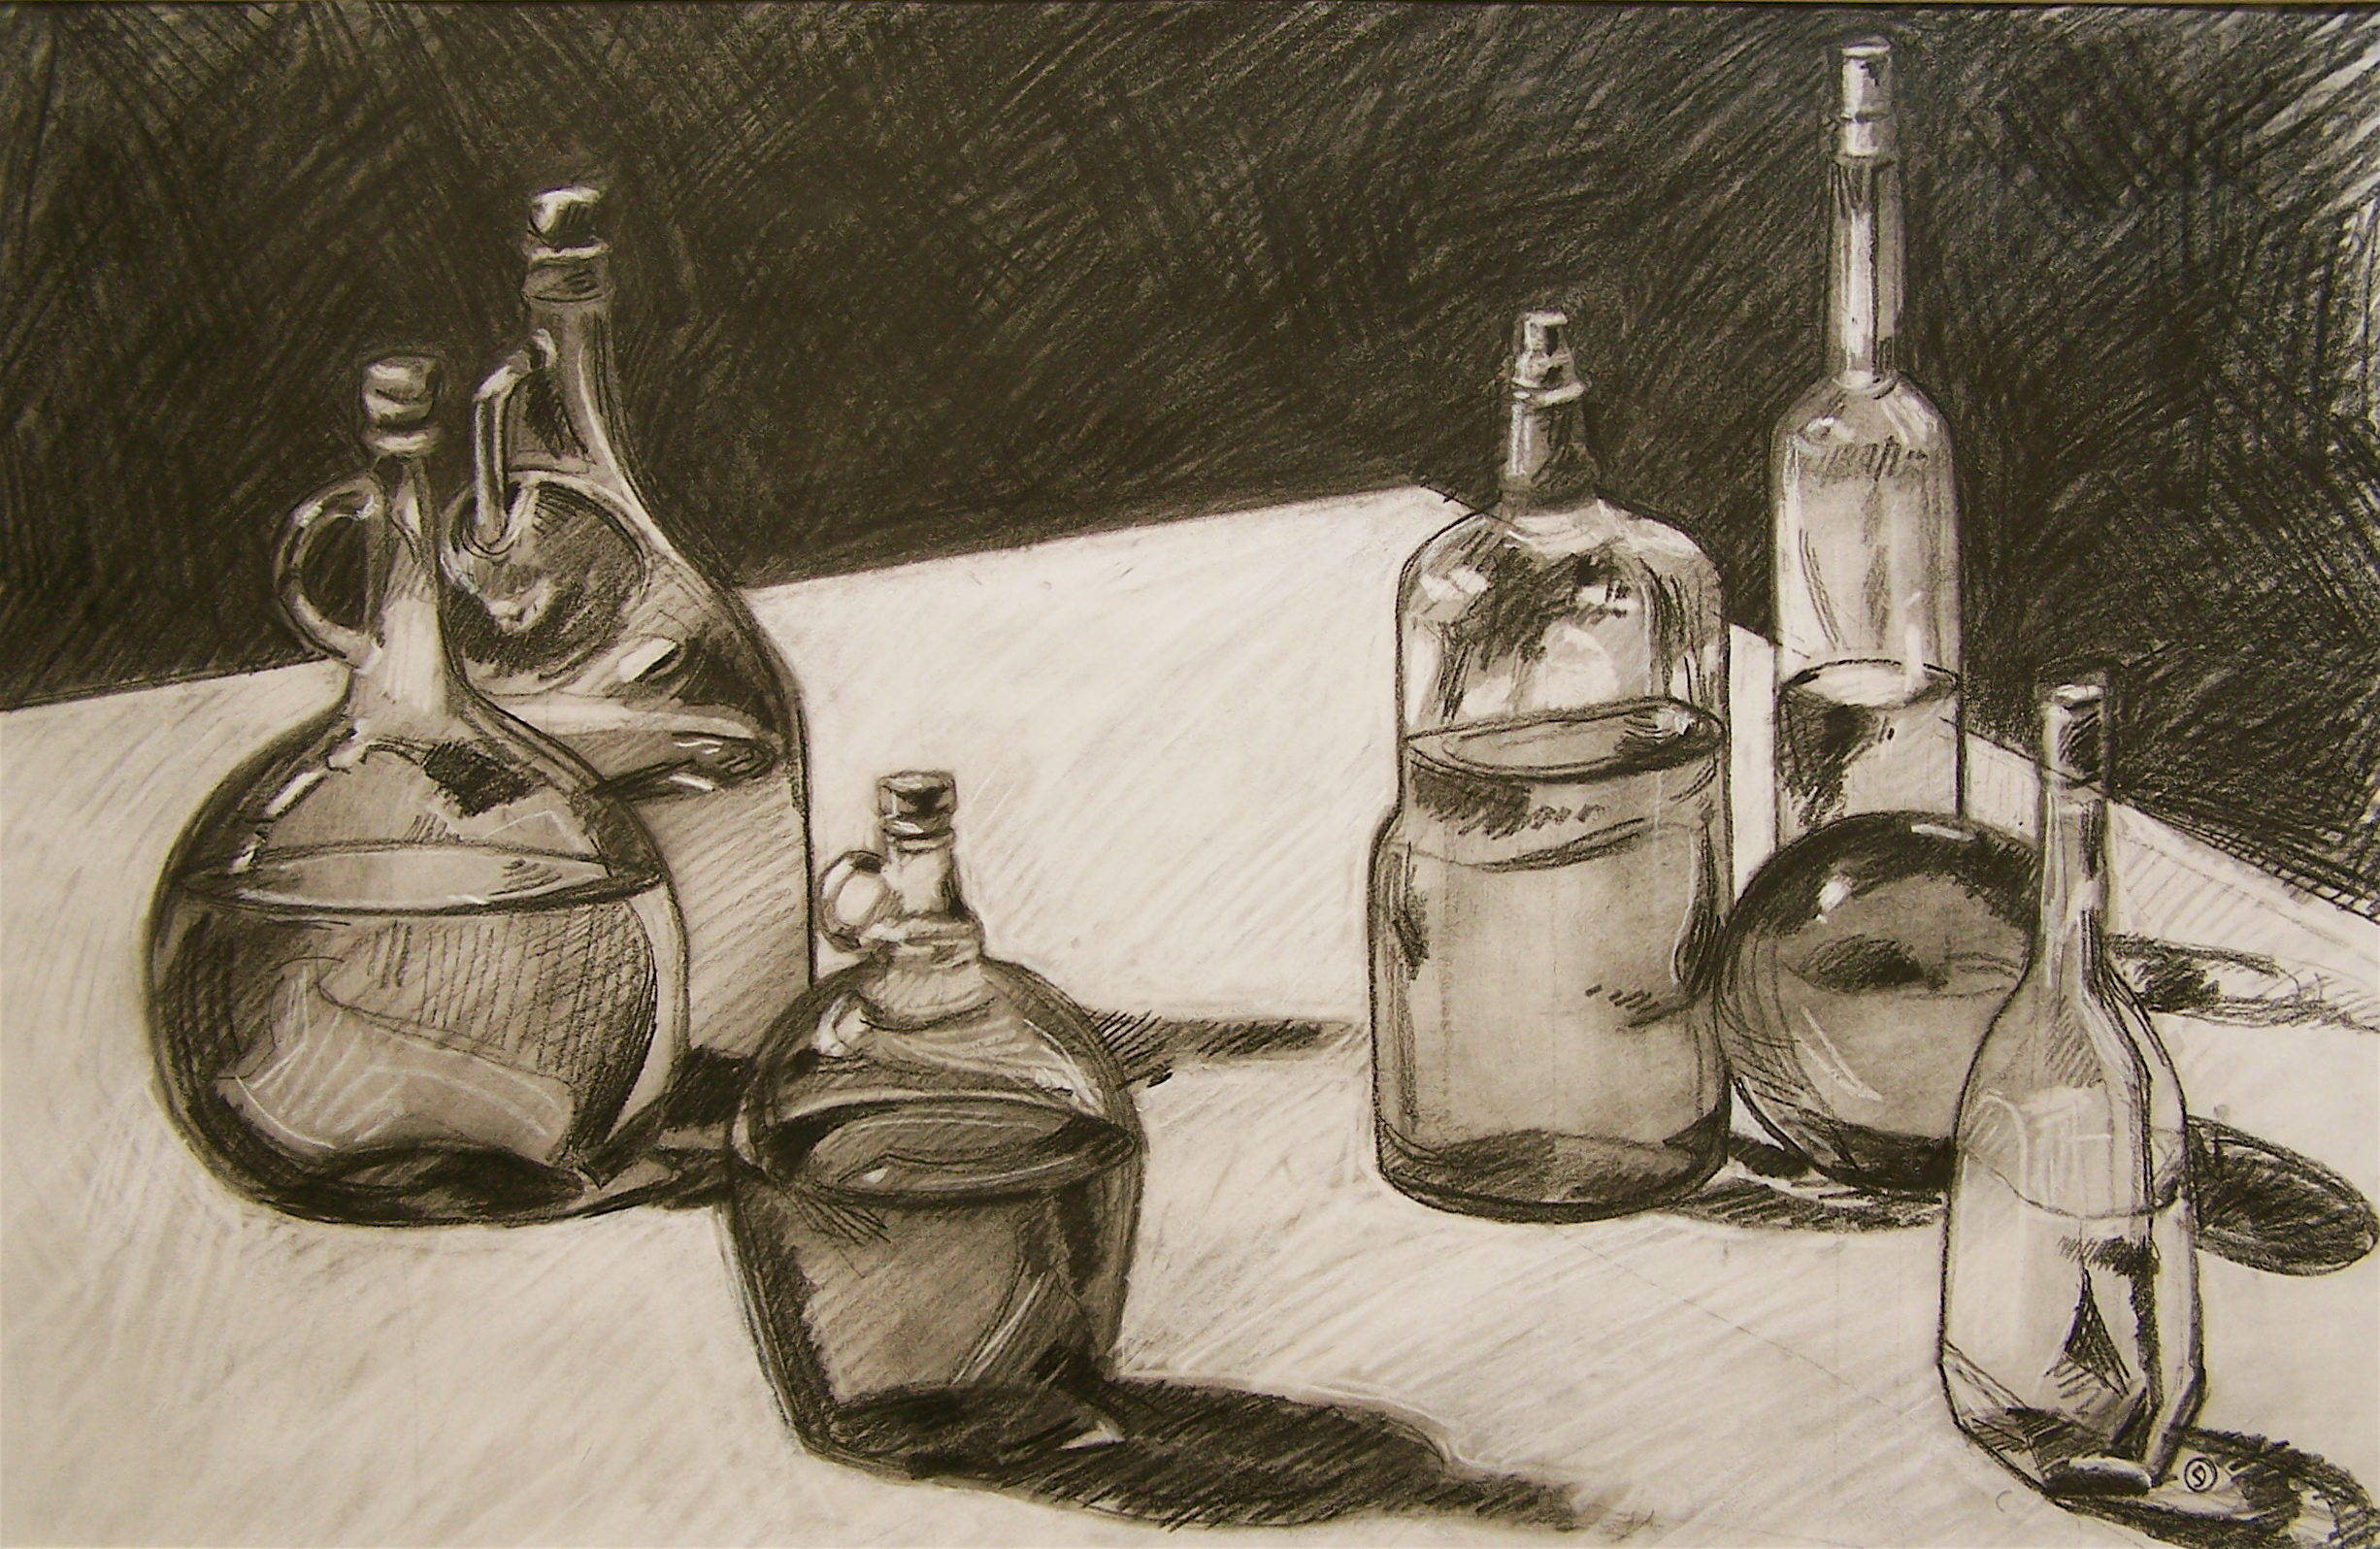 Drawn still life conte crayon  – Eric Painting A